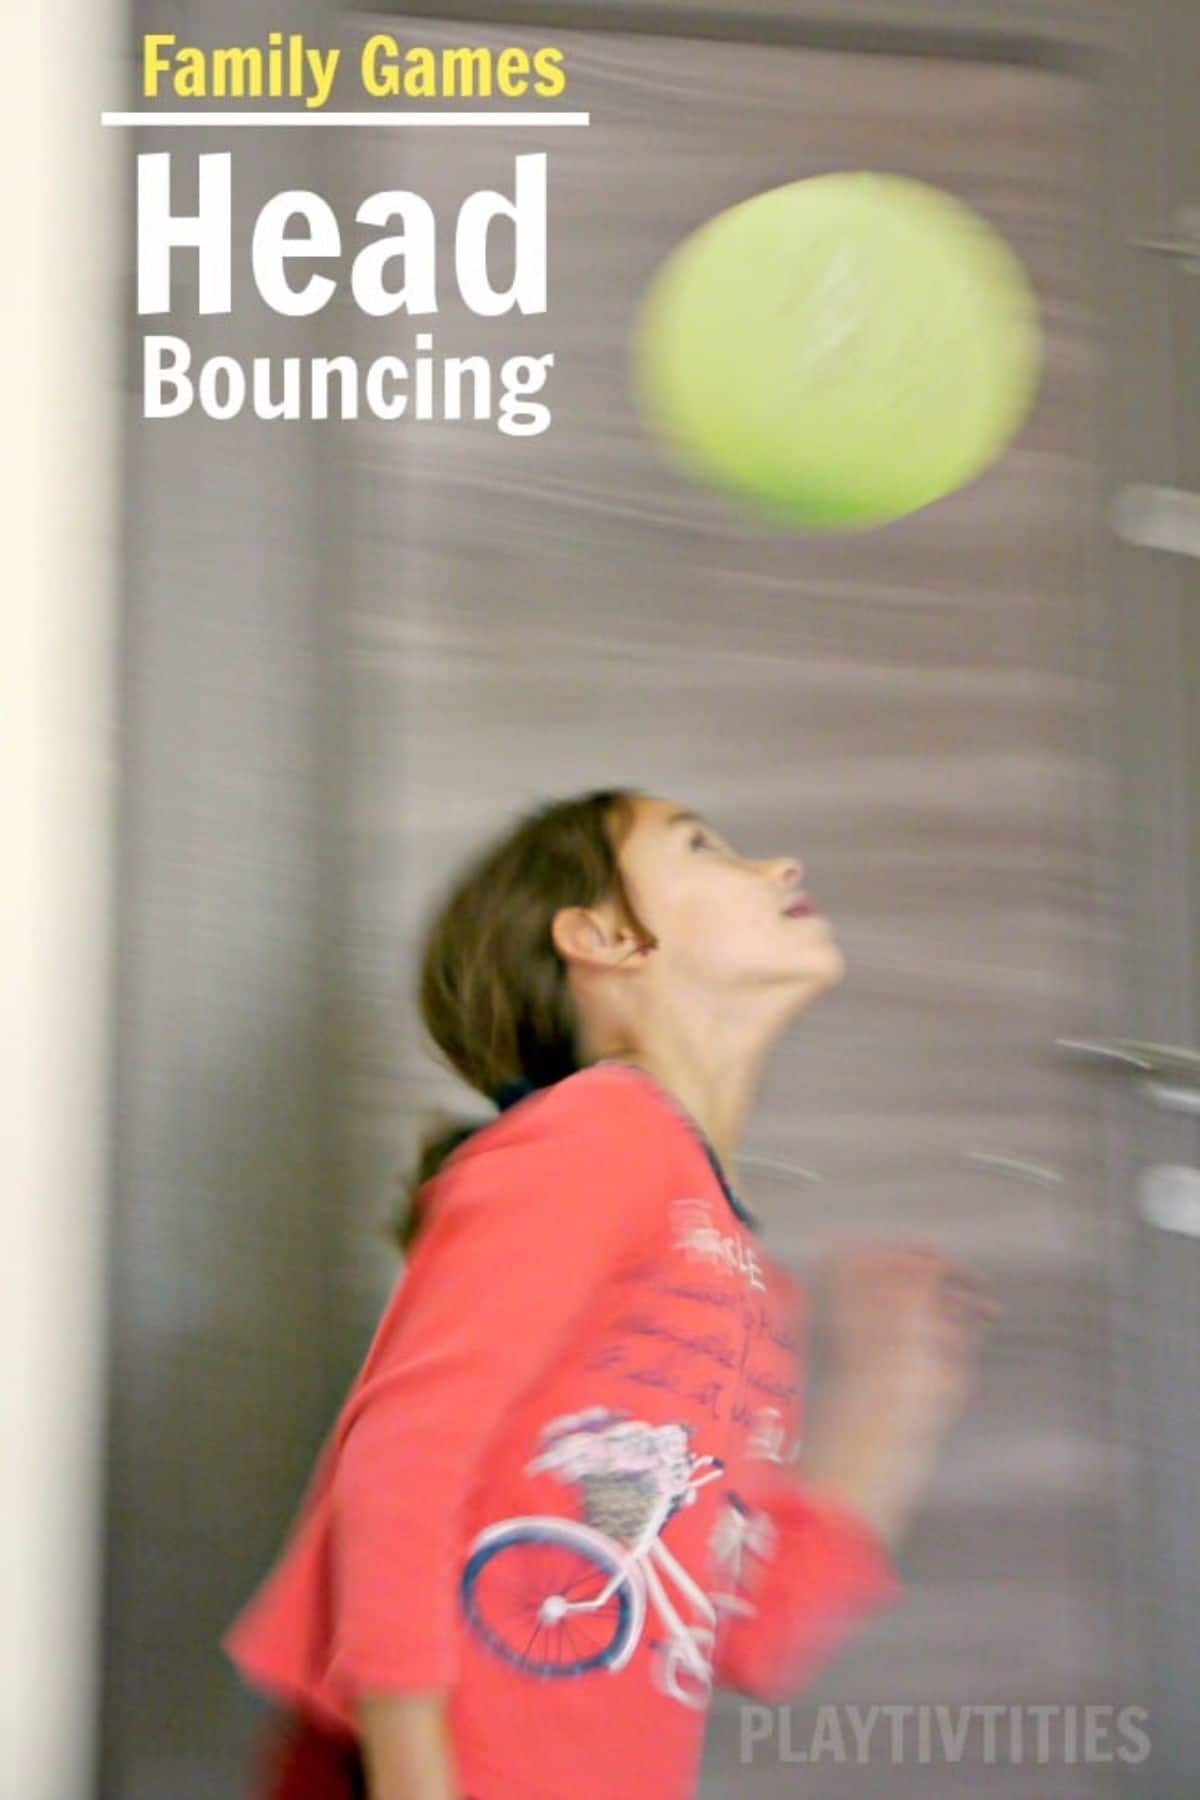 """A slightly blurred photo of a girl in a red shirt bouncing a balloon on her head. The text reads """"Family Games: Head Bouncing"""""""